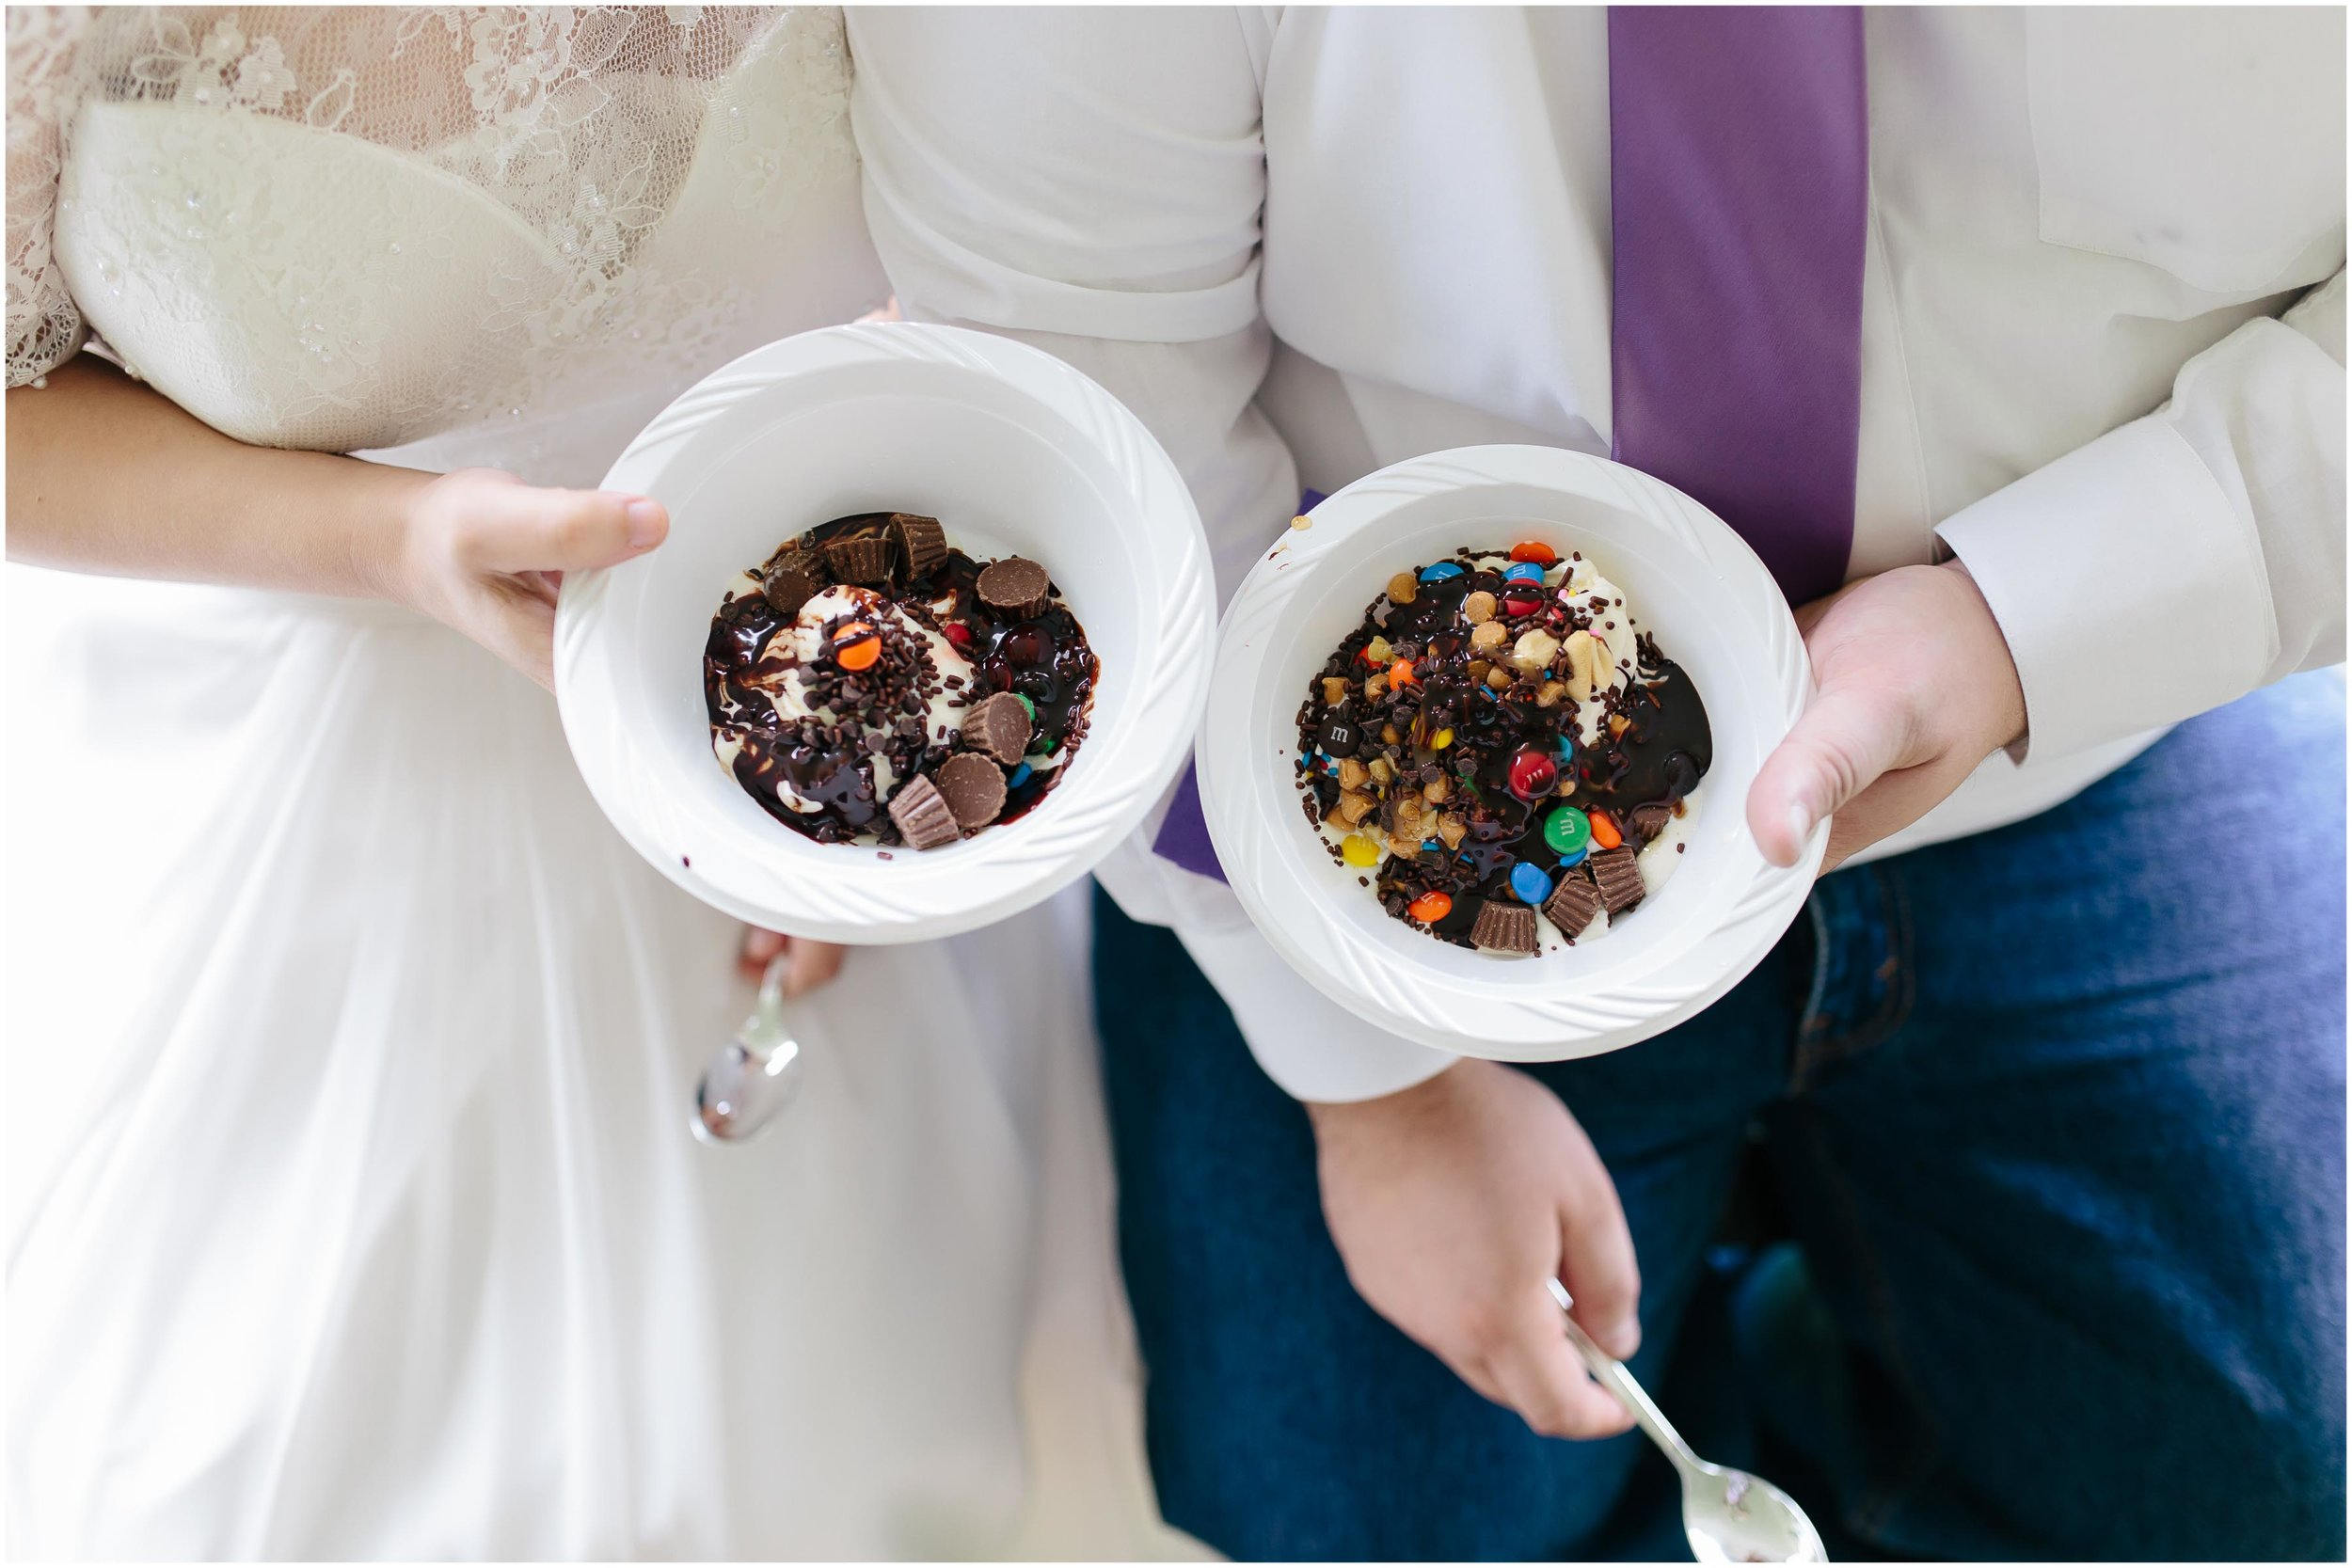 Charming Massachusetts countryside journalistic wedding by Ashleigh Laureen Photography - bride and groom at reception, ice cream sundaes